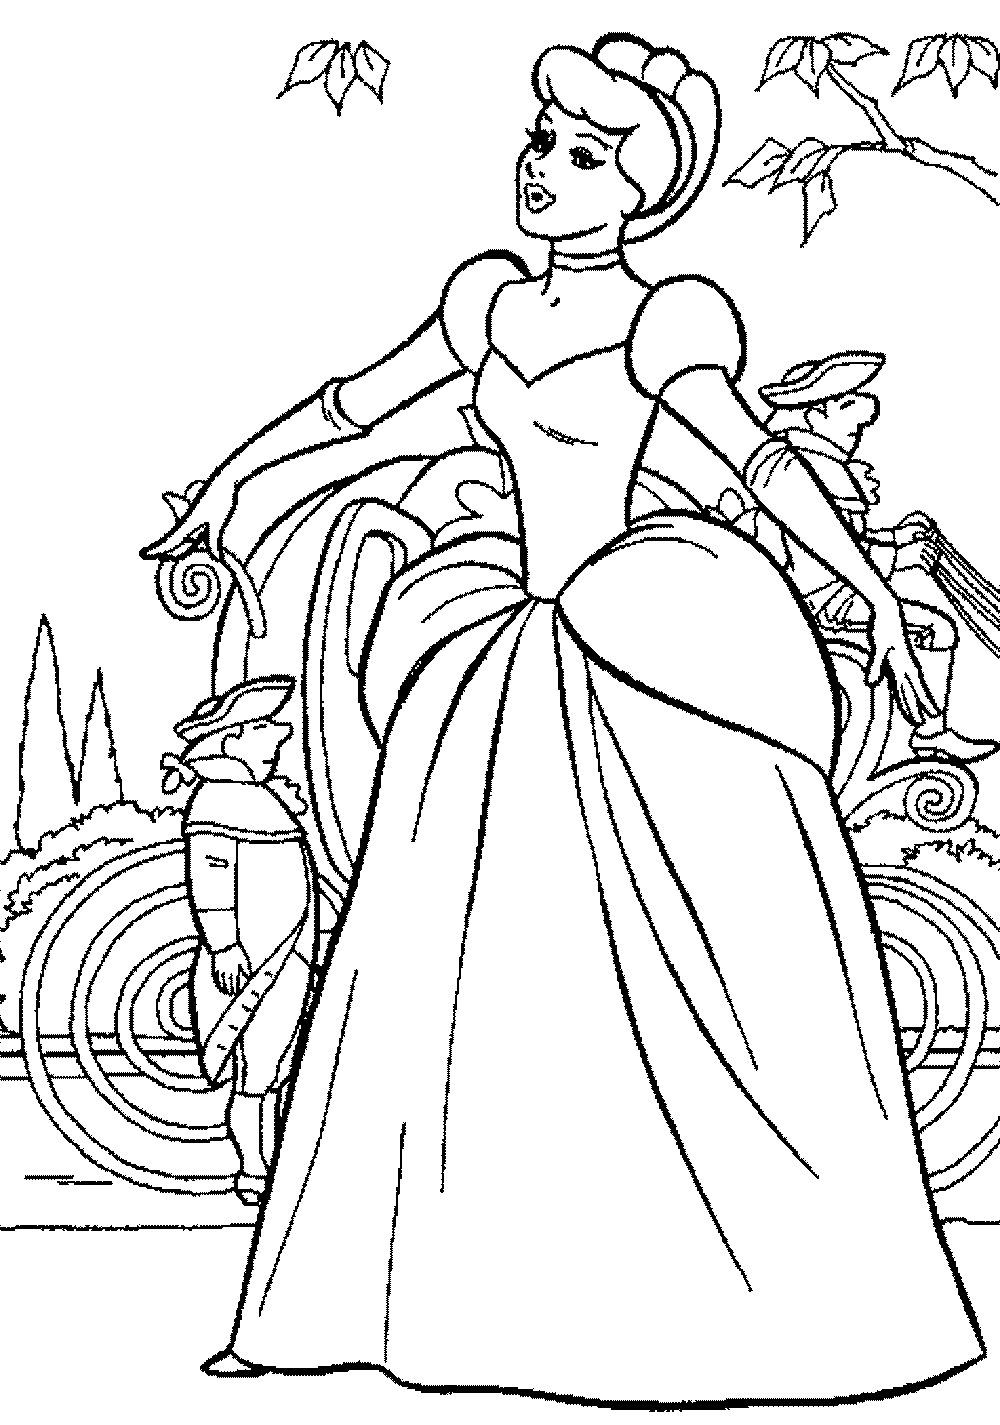 disney cinderella coloring pages - Cinderella Coloring Pages